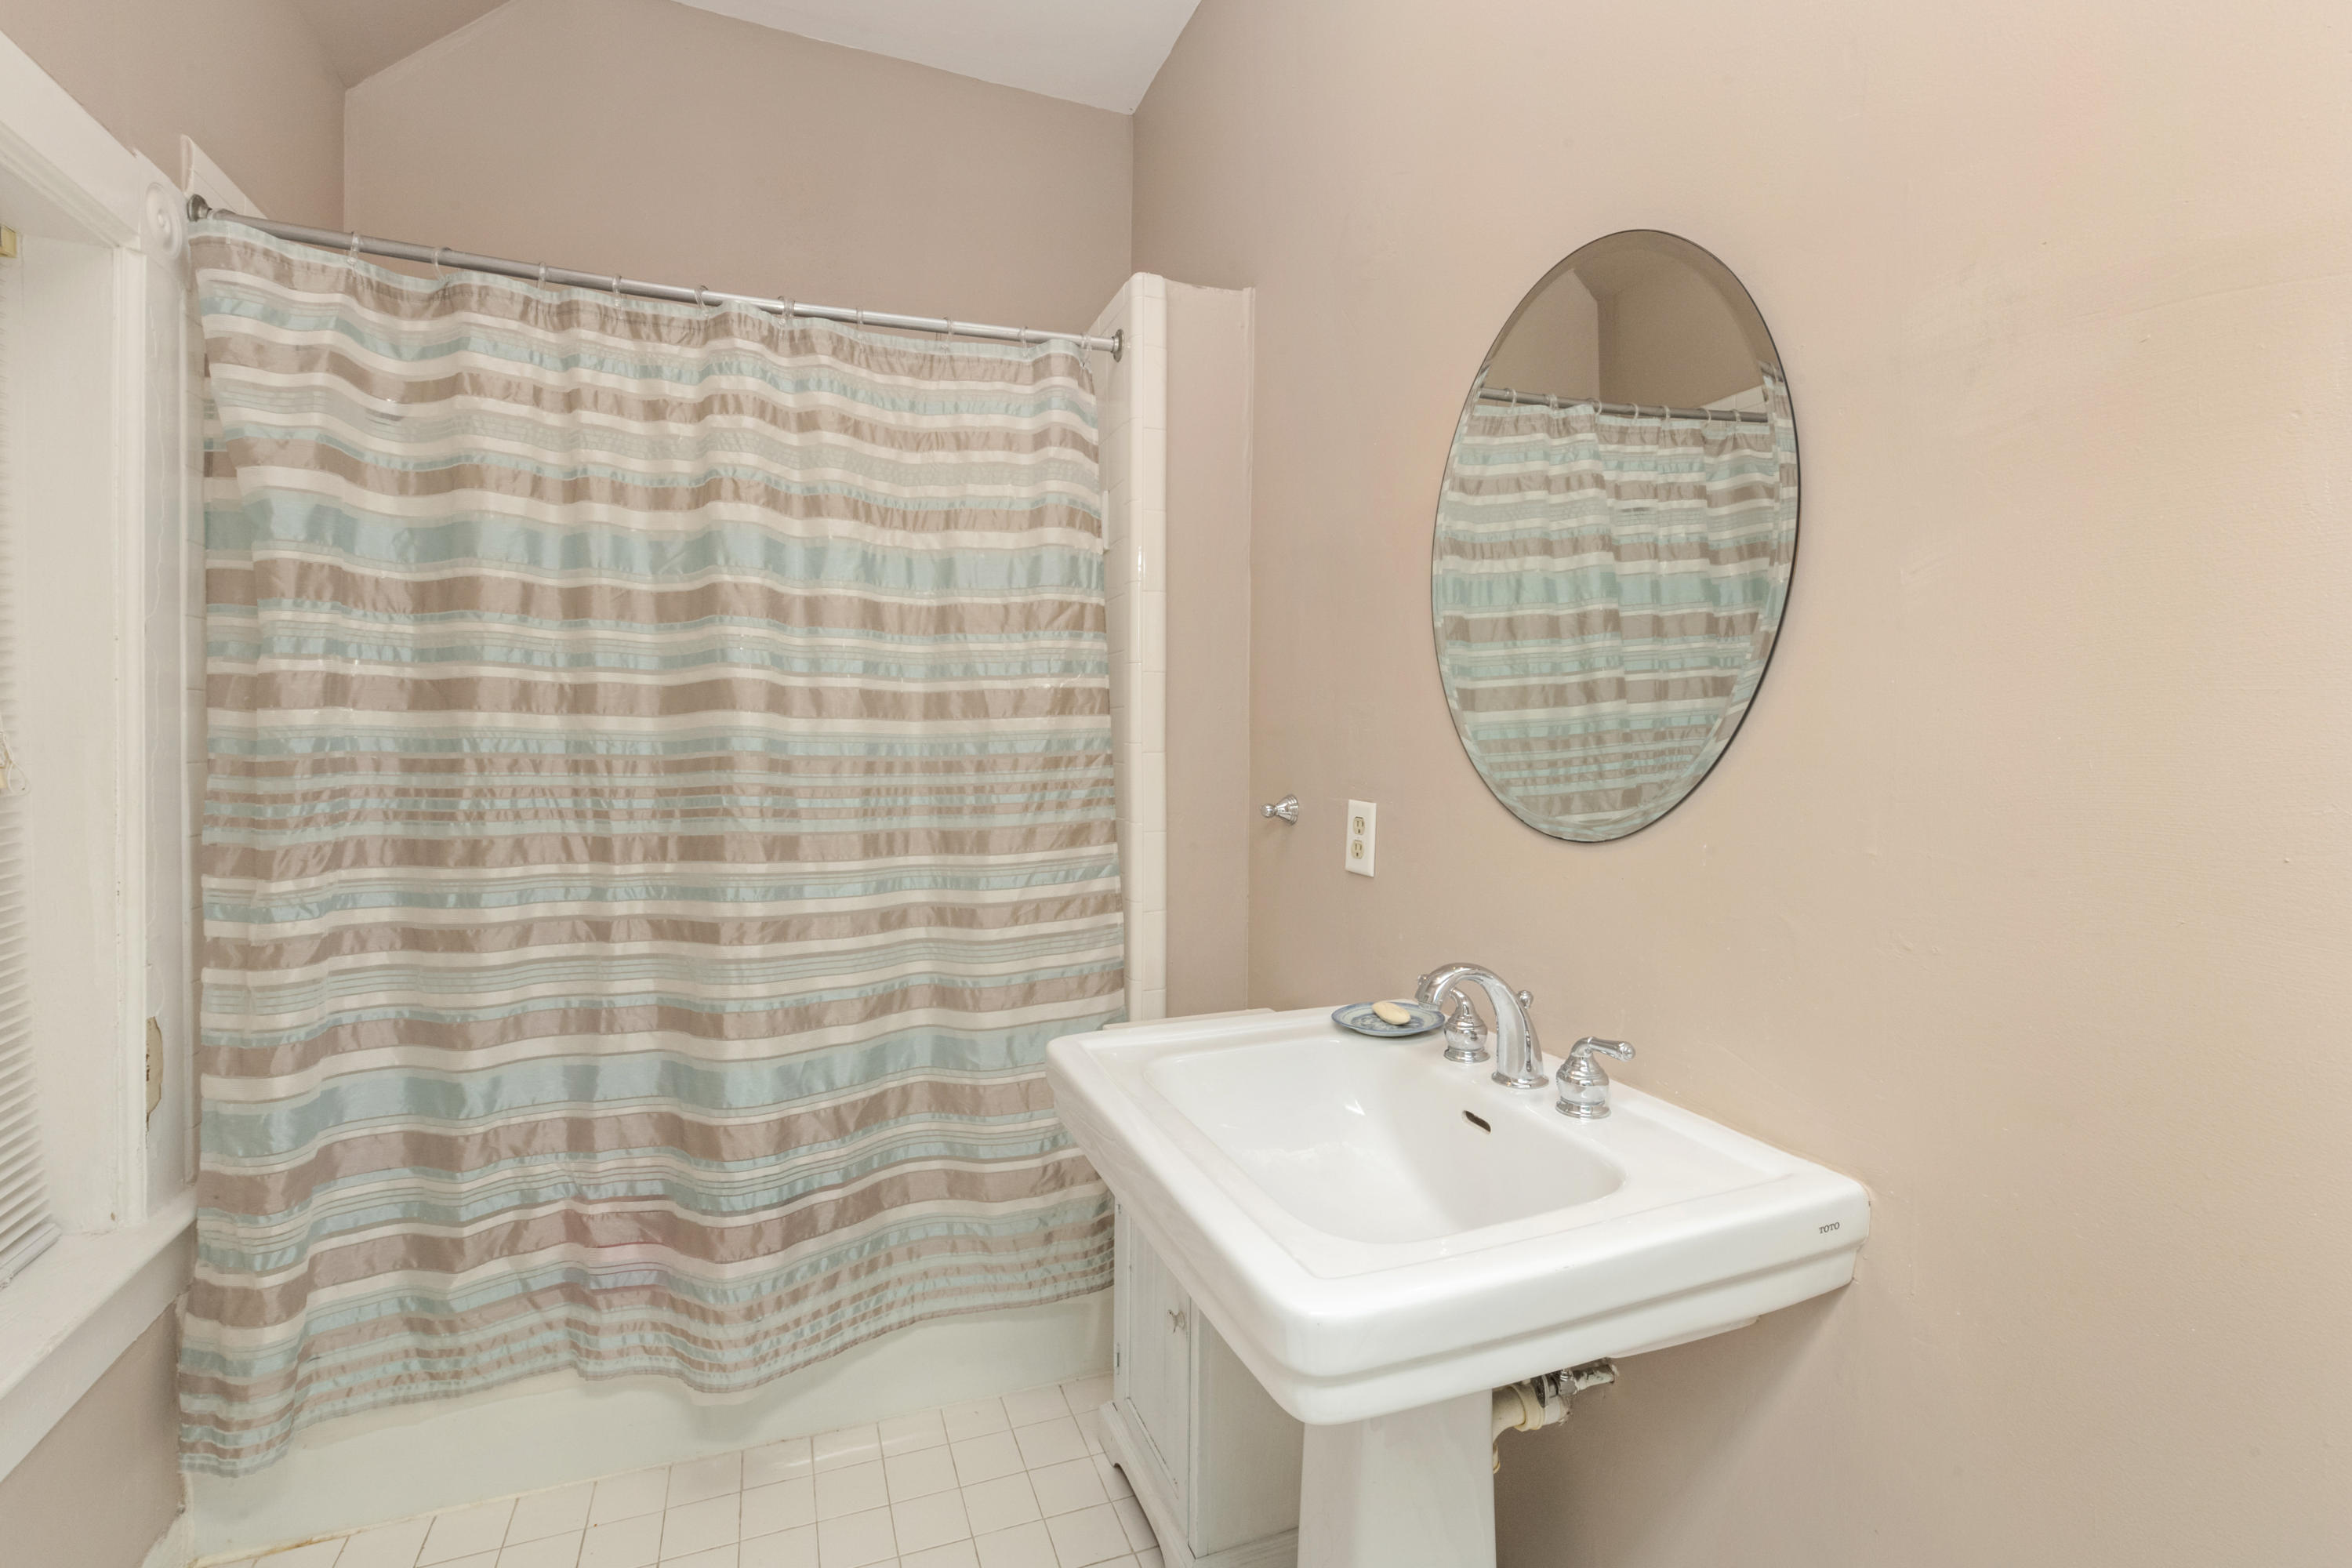 South of Broad Homes For Sale - 4 Weims, Charleston, SC - 4